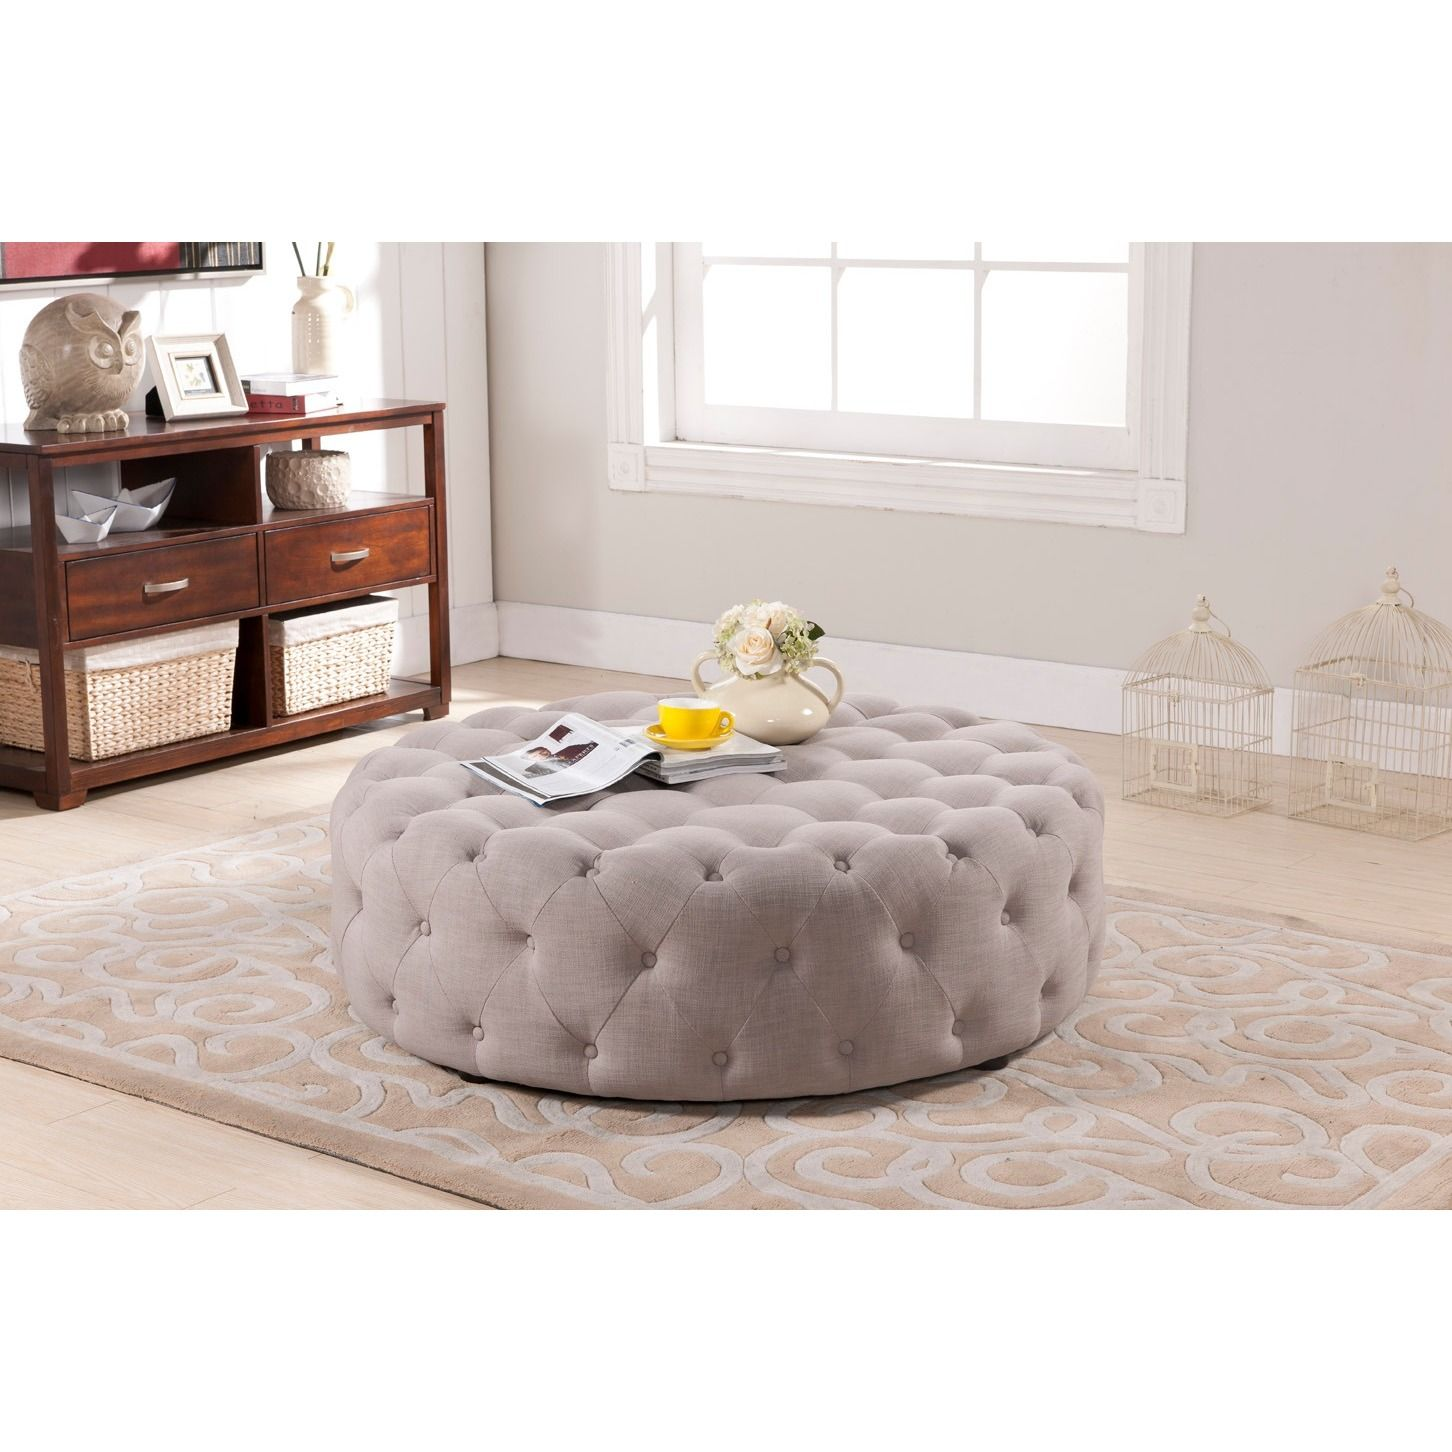 Tie your room together with the welldesigned cardiff modern ottoman